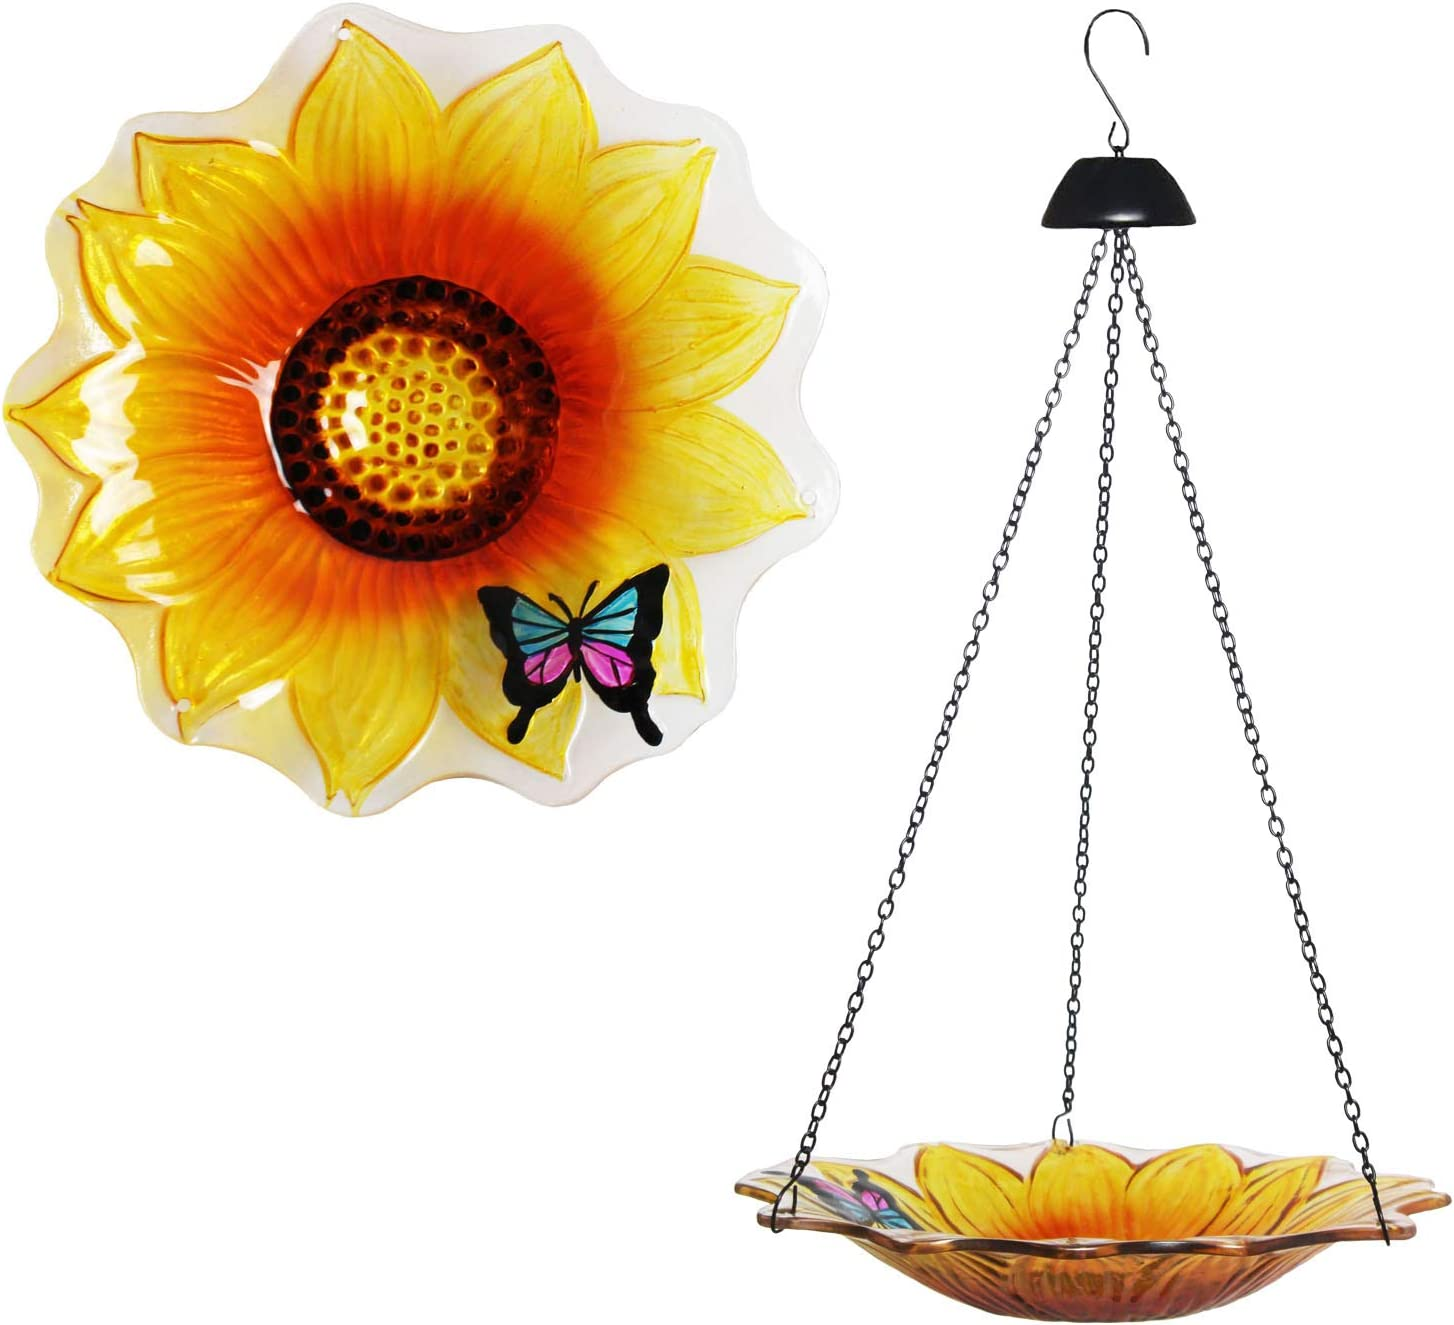 Cyleodo 11 inch Hanging Bird Bath Glass Bird Bath Sunflower Print with Butterfly Outdoor Glass Bowl Feeder for Patio,Garden,Yard